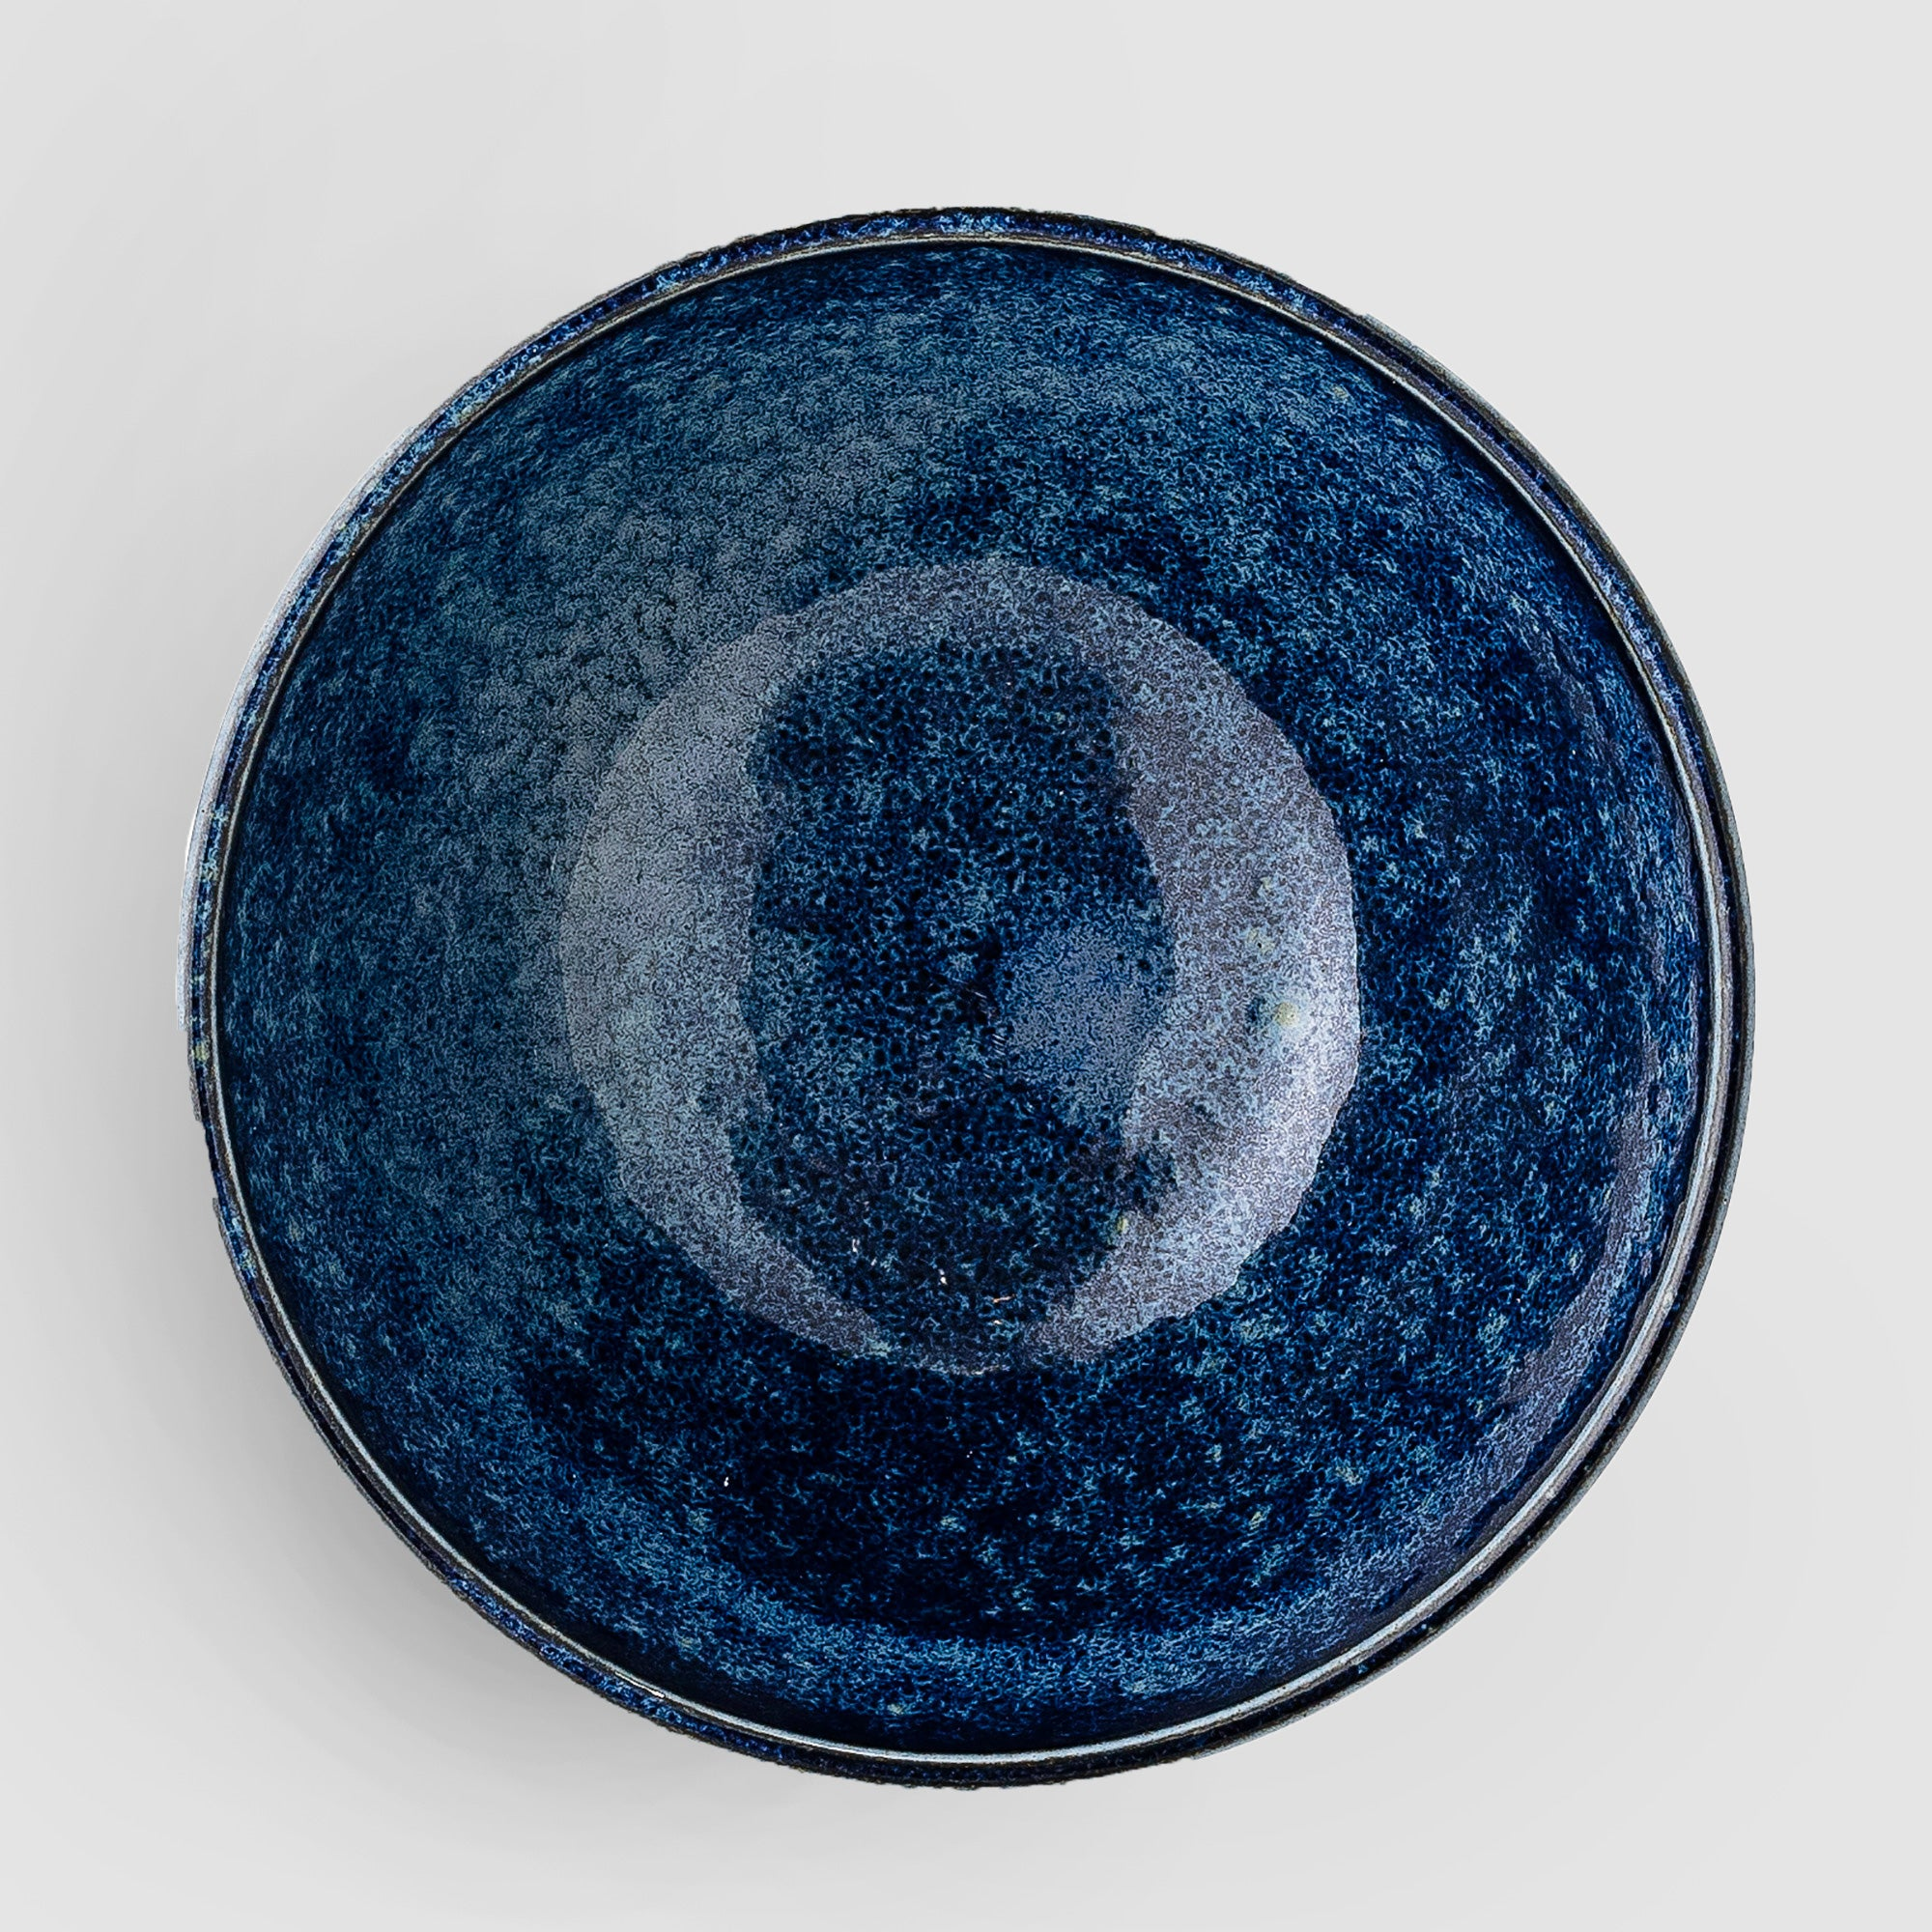 Camellia handcrafted glazed porcelain bowl